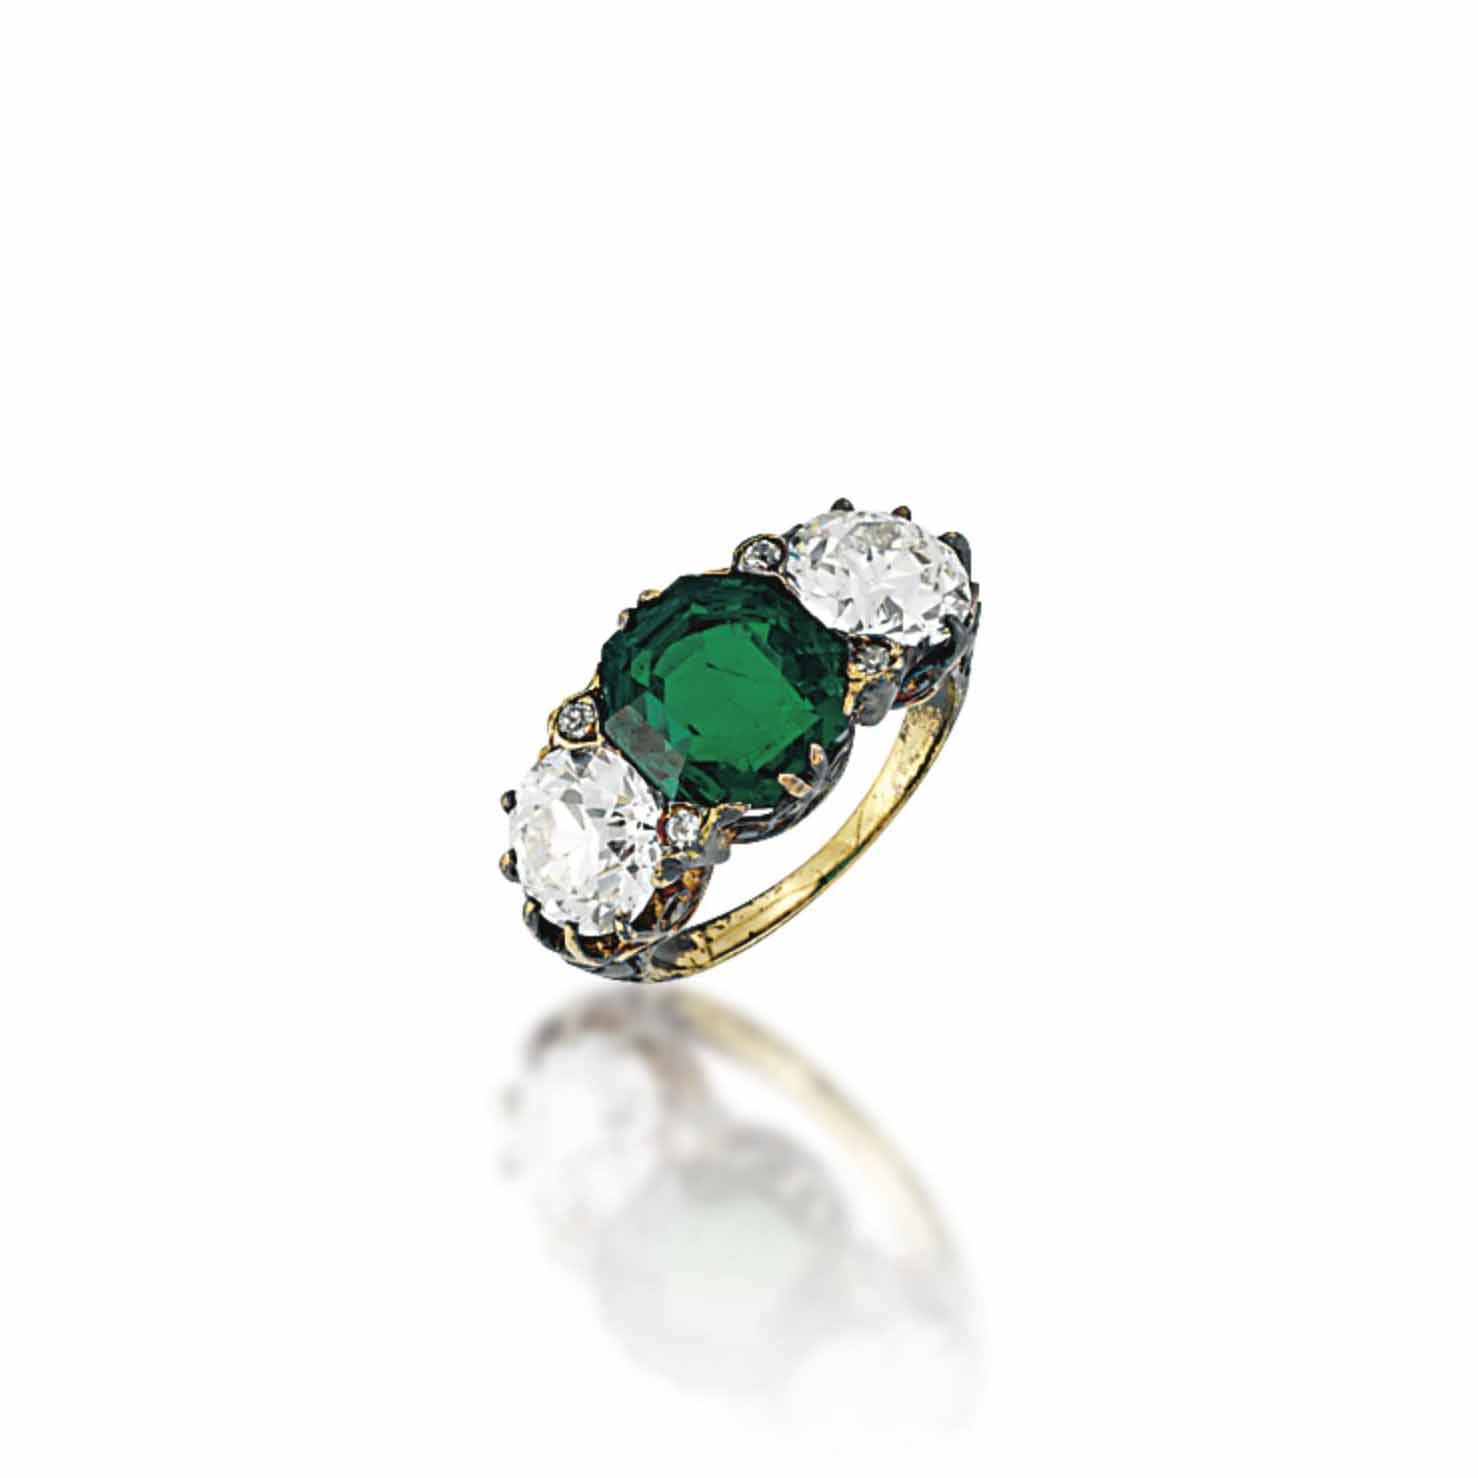 A VICTORIAN EMERALD AND DIAMON